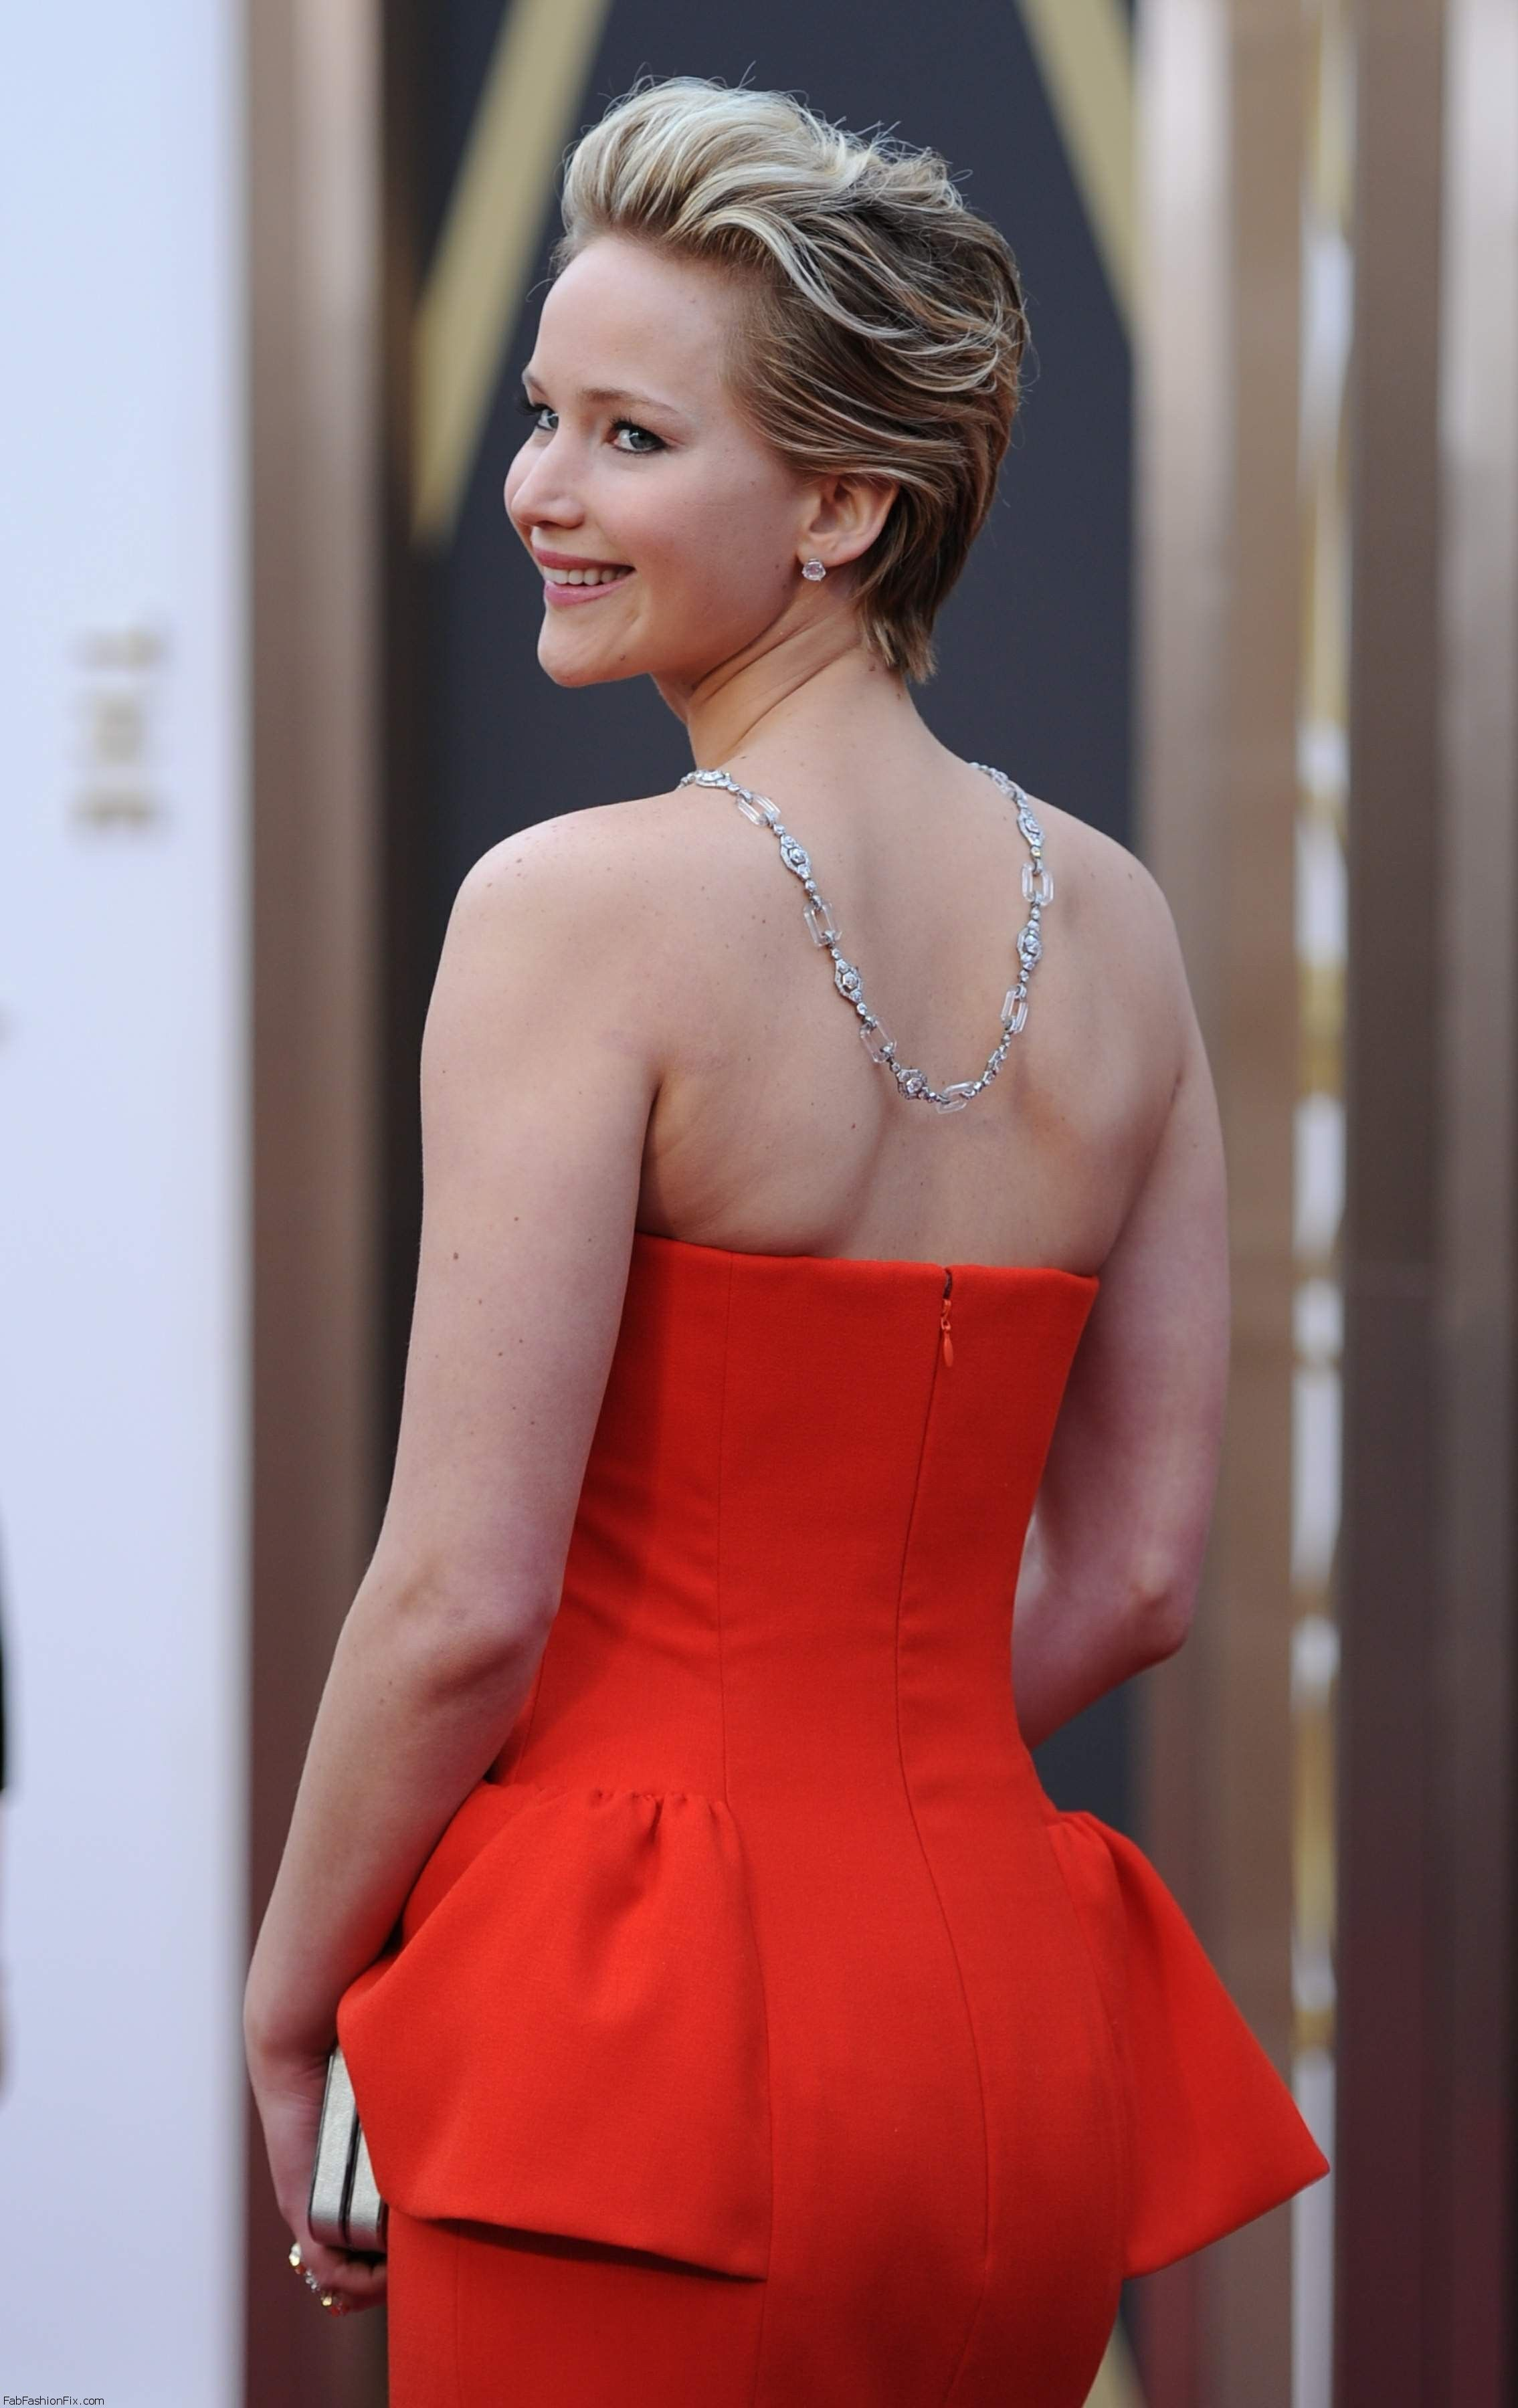 Jennifer Lawrence_02.03.14_DFSDAW_036